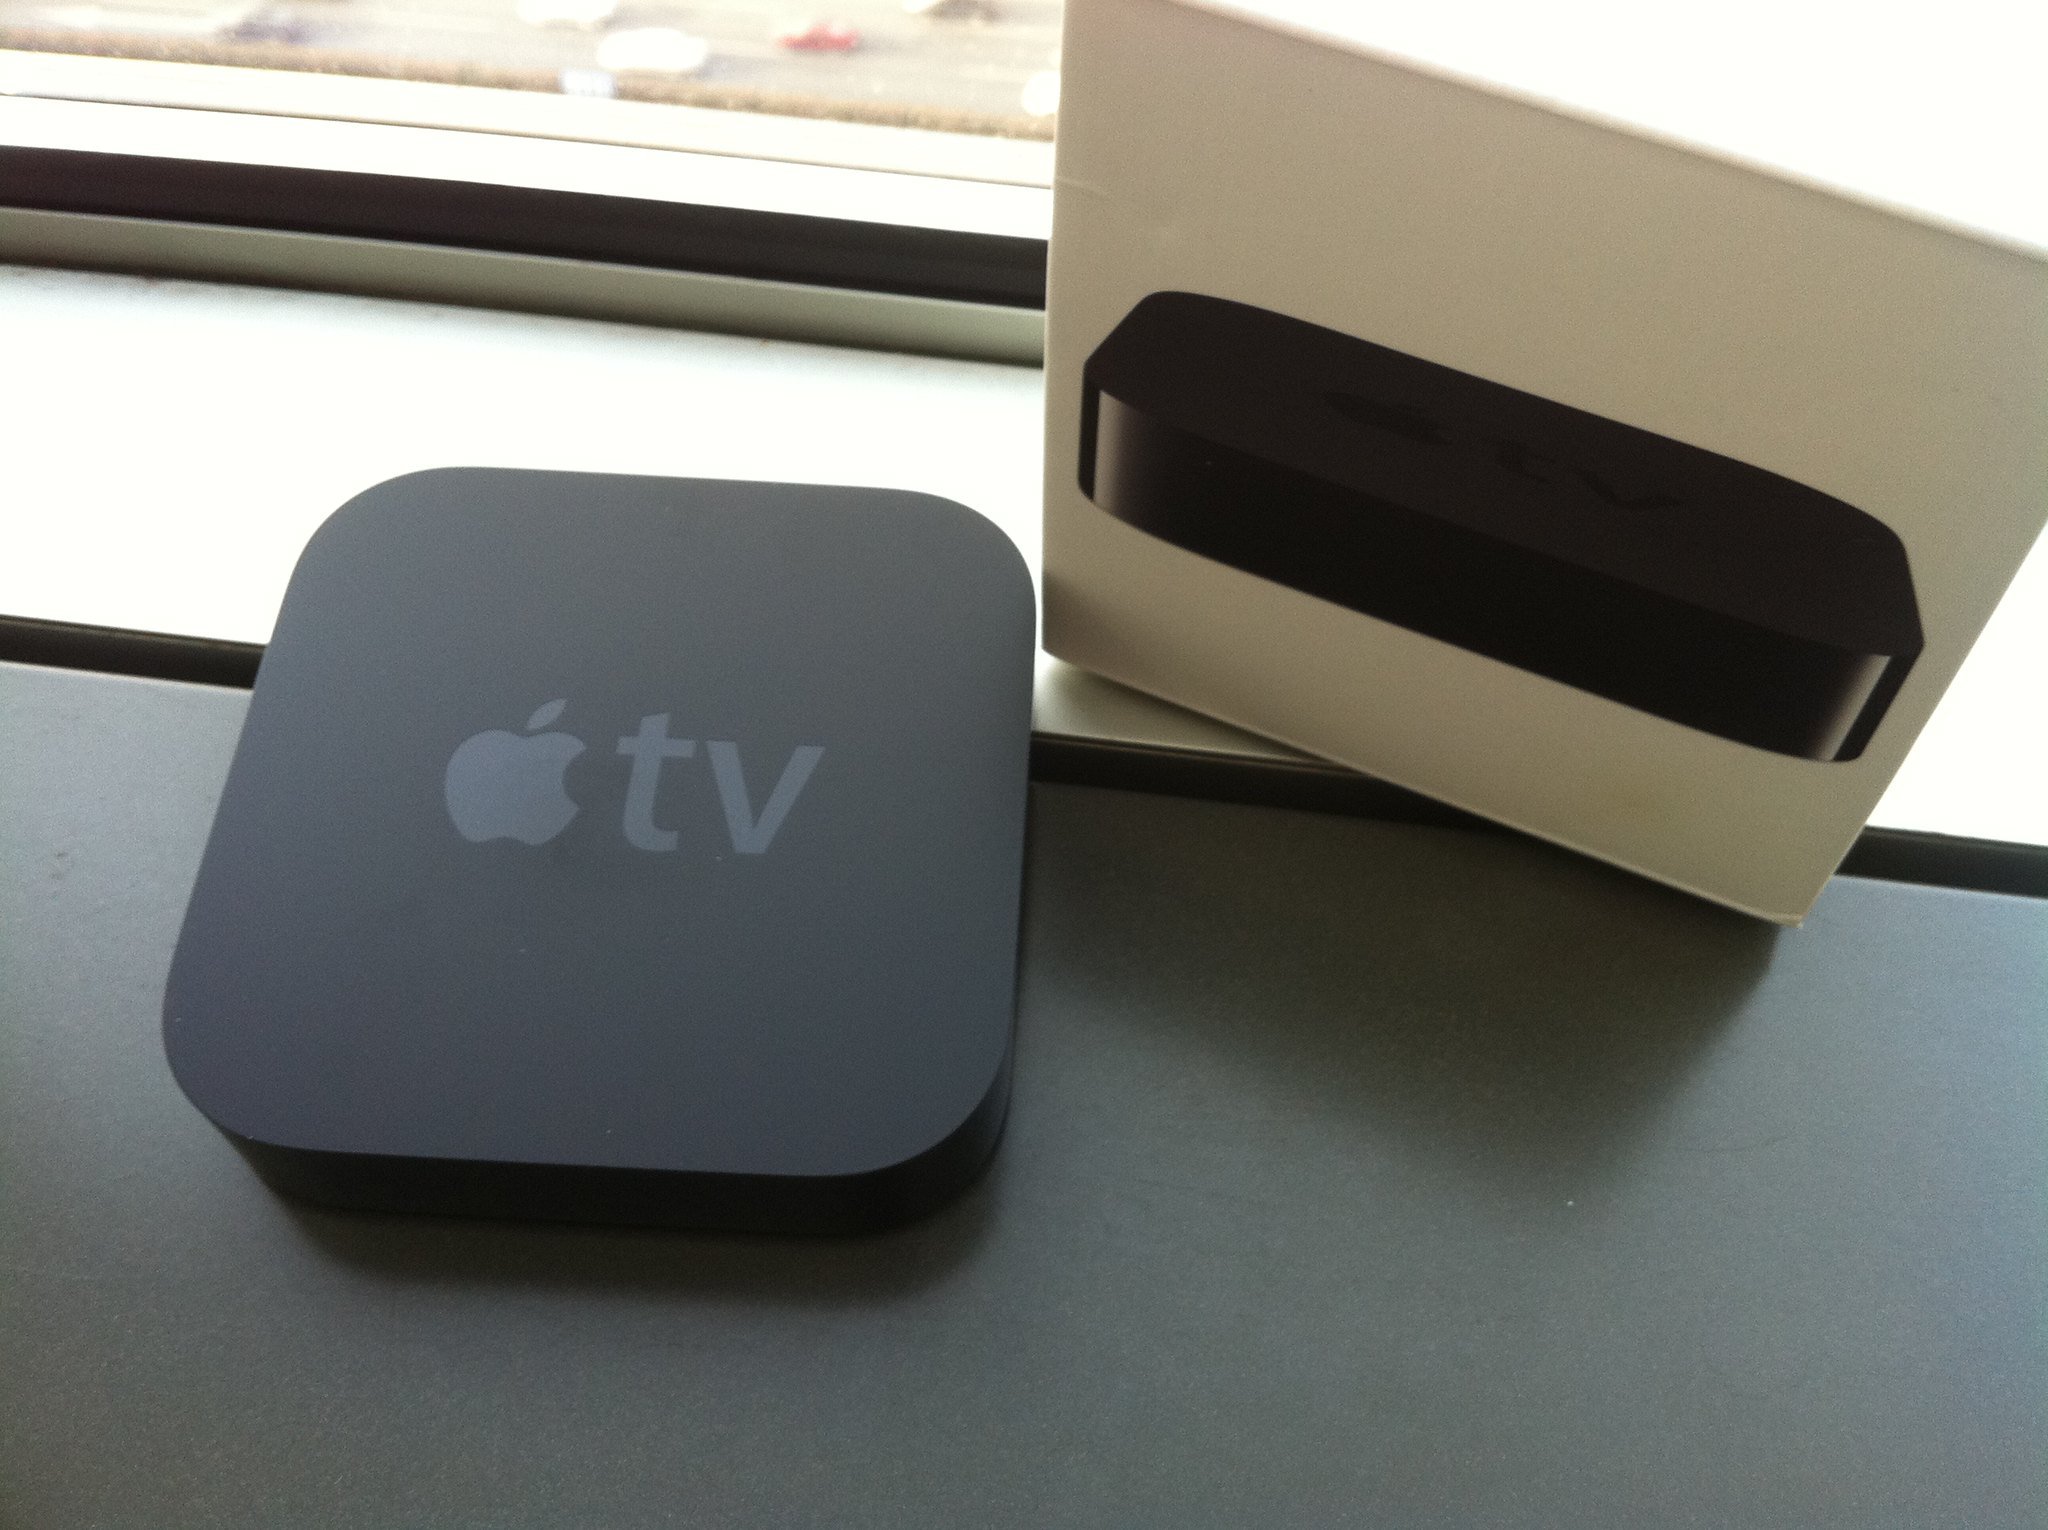 Could Apple TV+ Take a Gamble on One of the Most Successful Gambling Shows Ever?